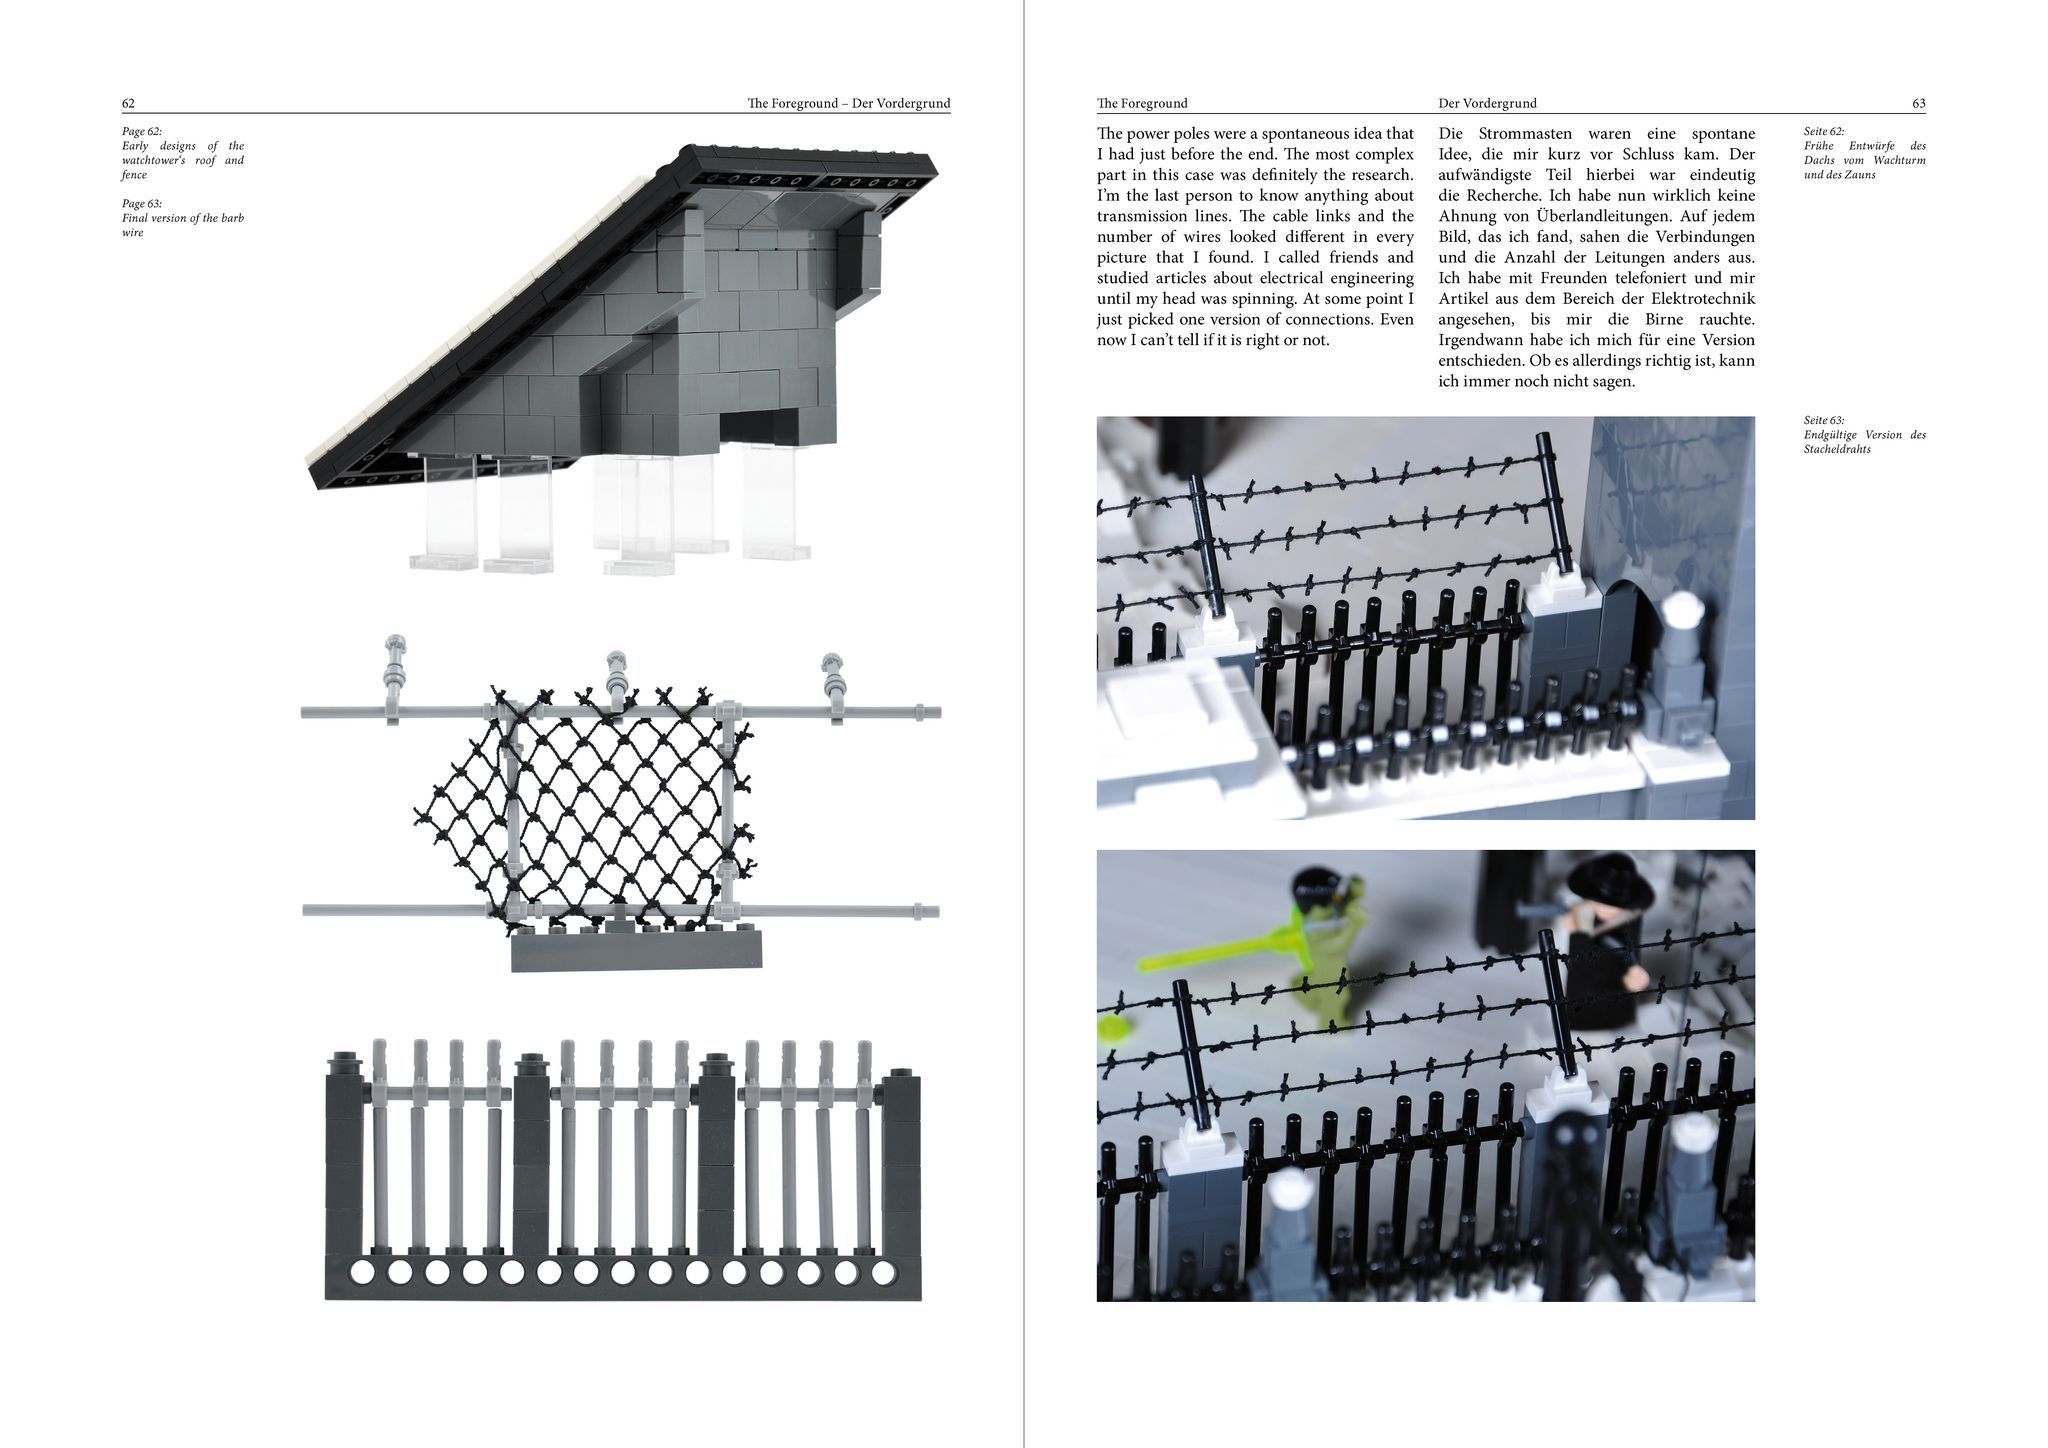 https://flic.kr/p/h82Pdi | Making of Arkham Asylum 32 | Finally, after over a year and many promises, here is my version of Arkham Asylum. There's no need for many explanations here in this text, because I designed an 82-page Making-of-book that explain every little step. And the best part: It's for free.  You can find all the pages here on flickr or you can download a free PDF-version from Uploaded.to. You don't need to create an account, just follow this  LINK. It takes about 20 - 40…